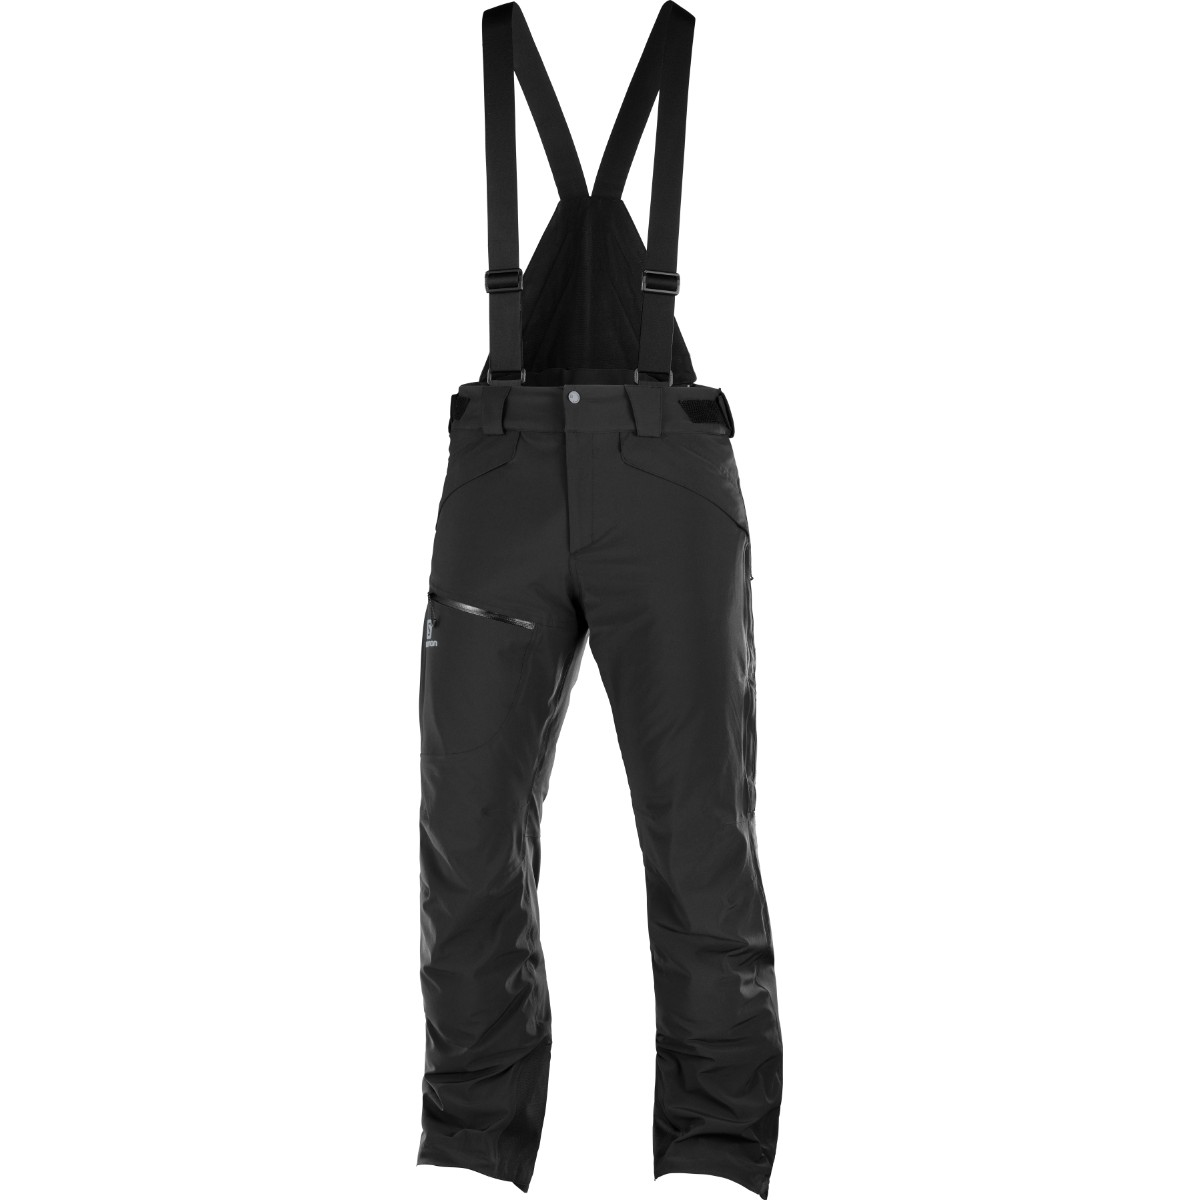 Salomon Pantaloni de ski Salomon CHILL OUT BIB - Negru